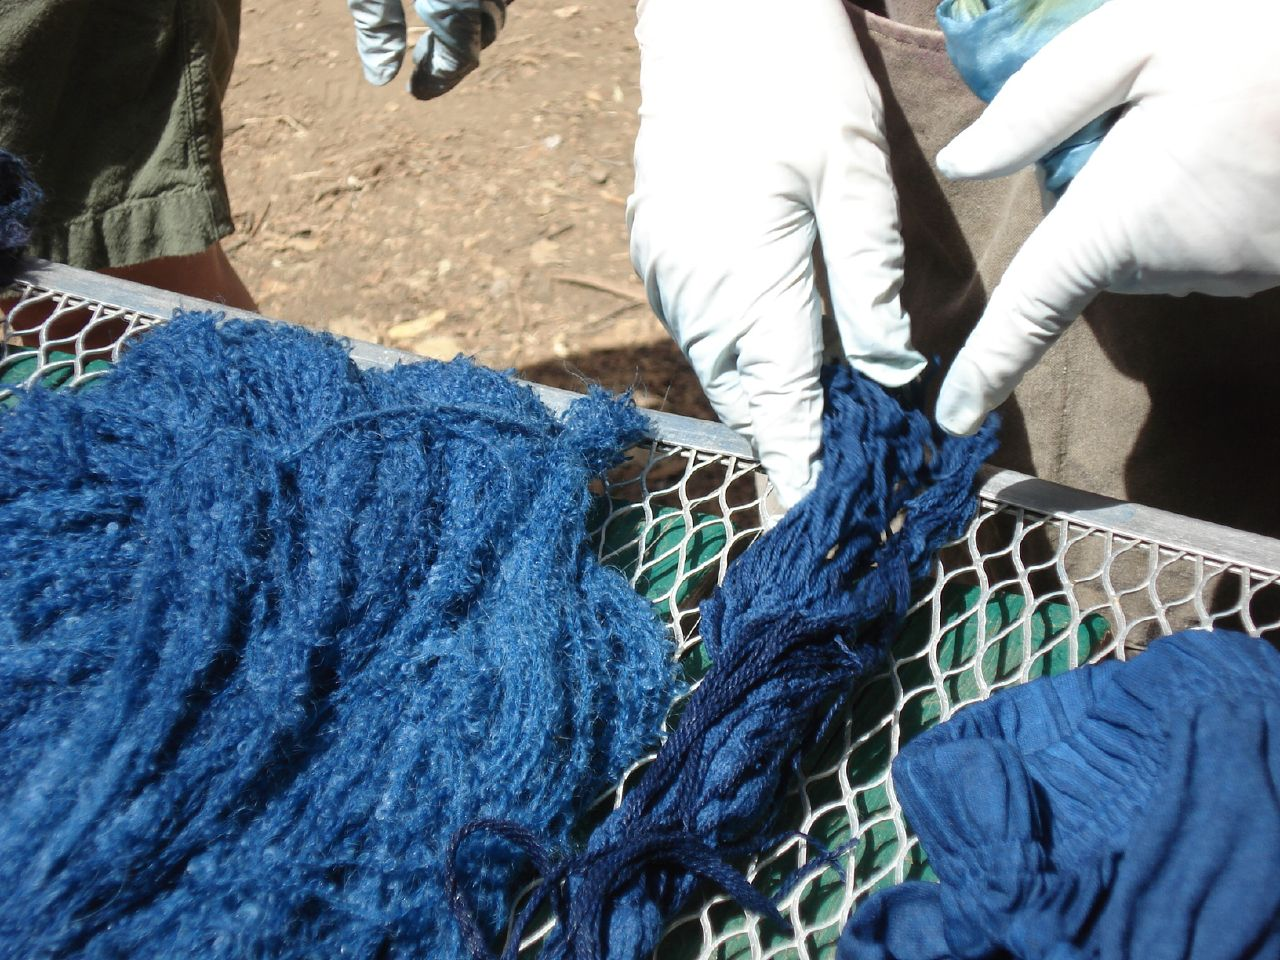 The dye of indigo plant is blue, as can be seen here on this dyed wool.